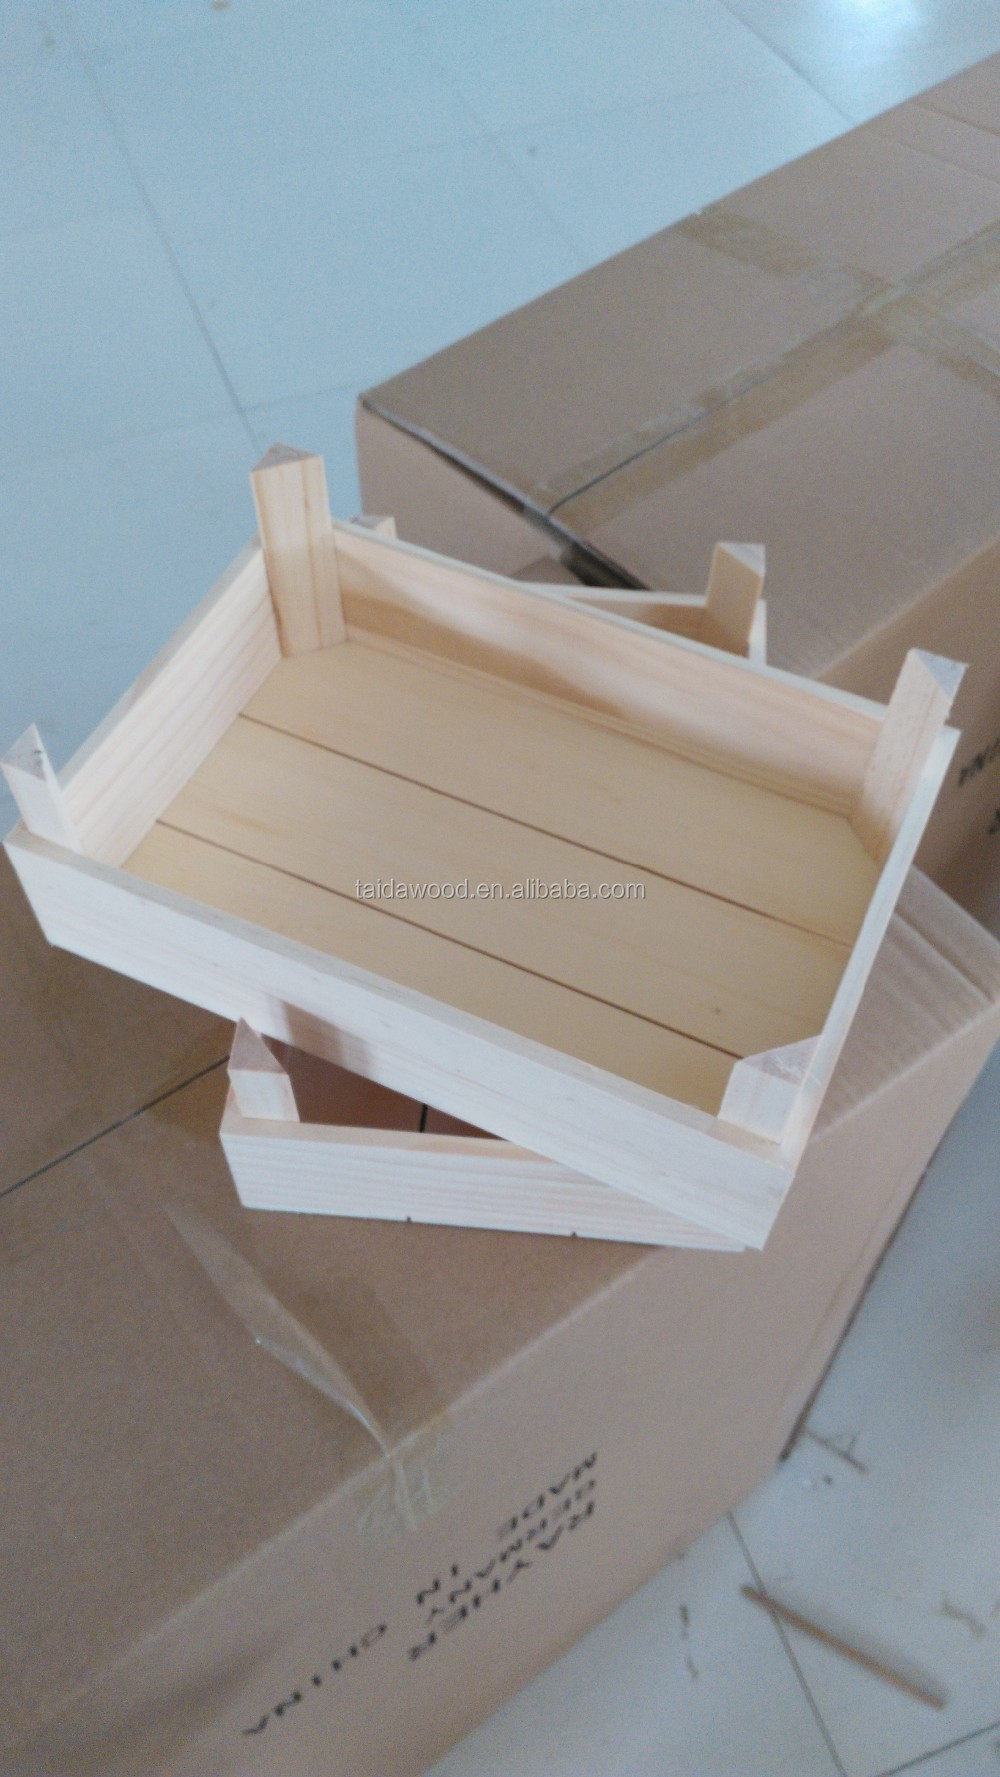 grape /tomatoes packing use wooden crates box ,wooden box